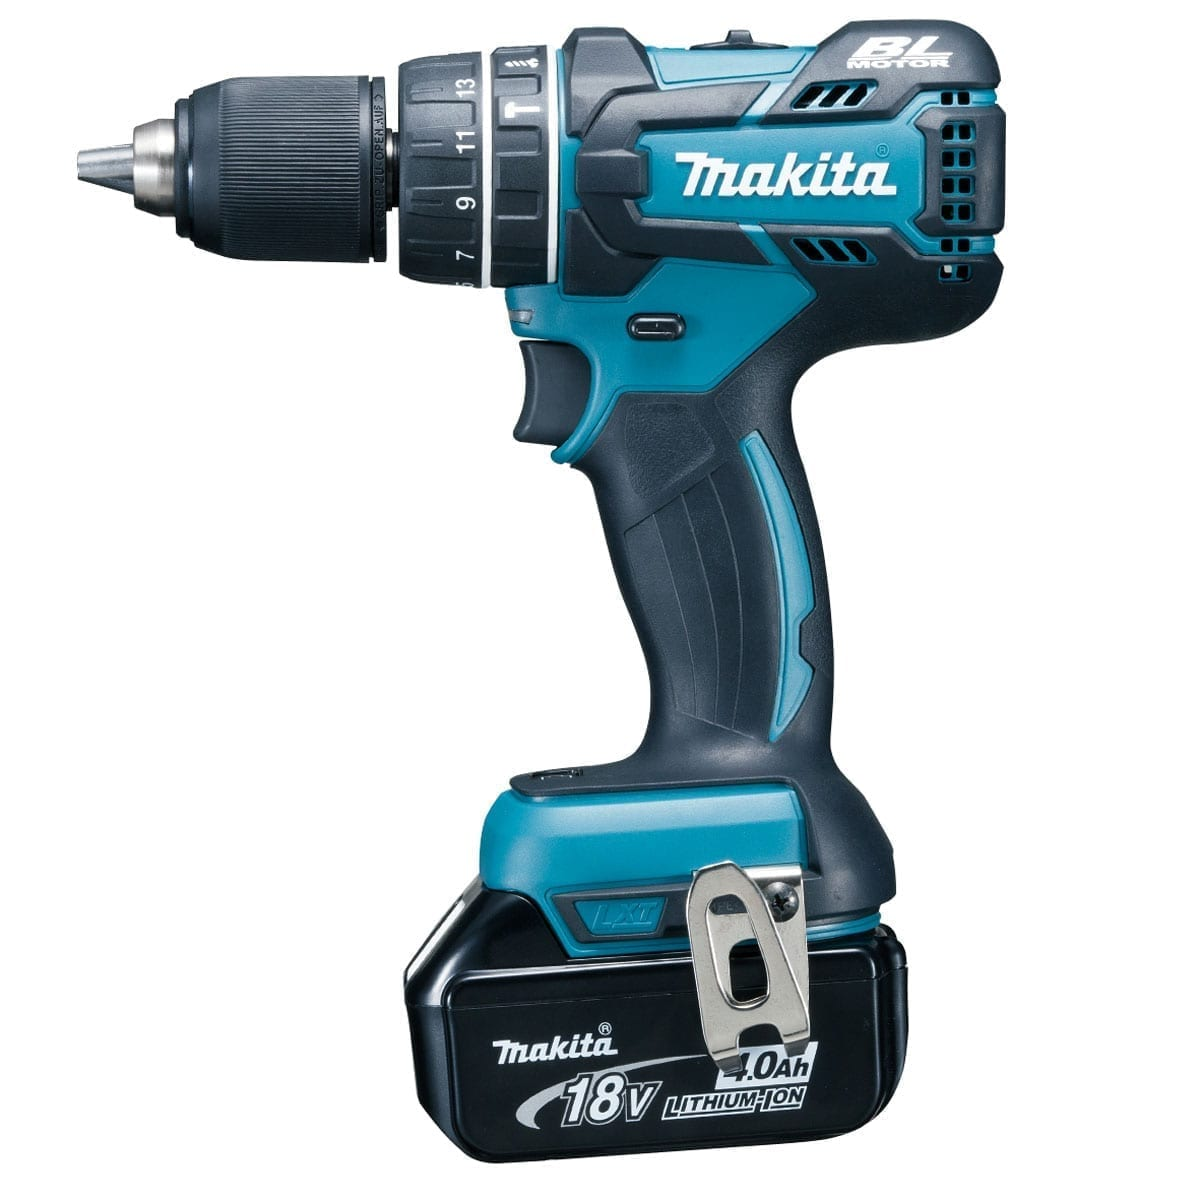 makita dhp480rmj 18v cordless li ion brushless combi drill 2 x 4ah batteries building shop. Black Bedroom Furniture Sets. Home Design Ideas